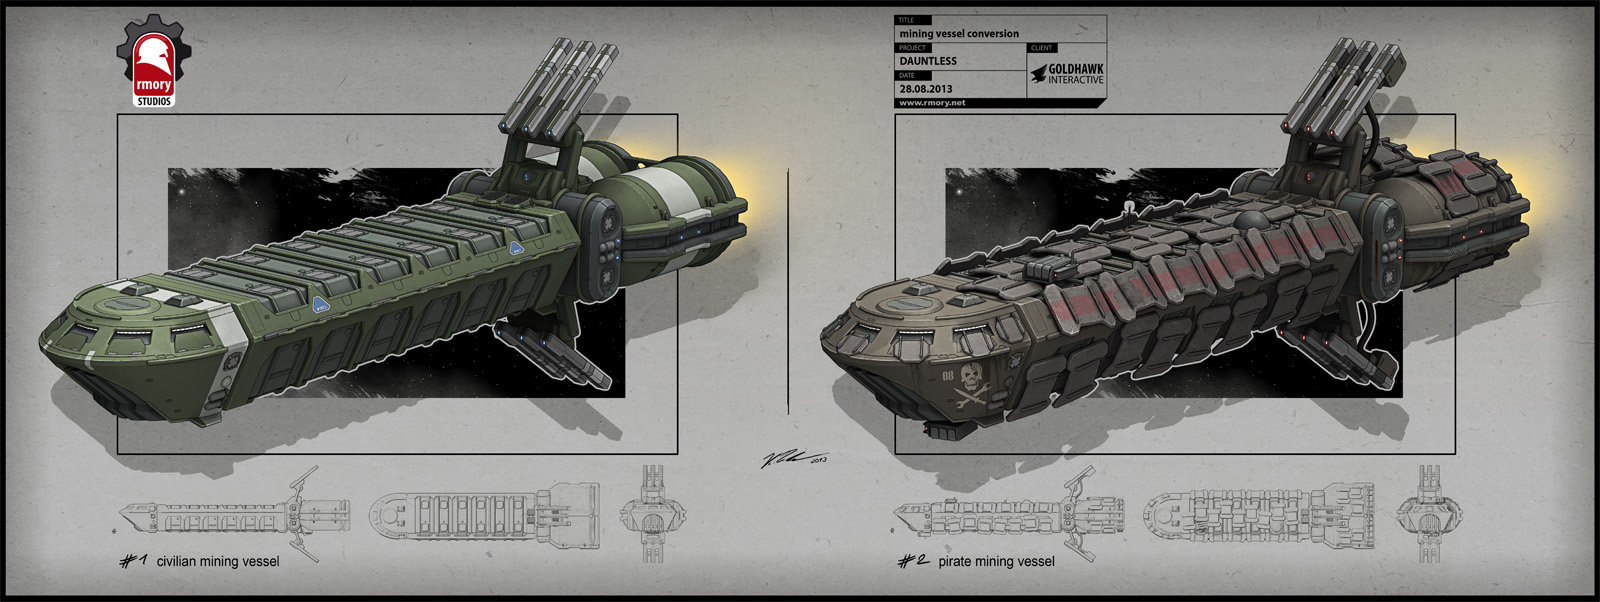 Mining Vessel Conversion for Dauntless by Goldhawk Interactive - rmory studios